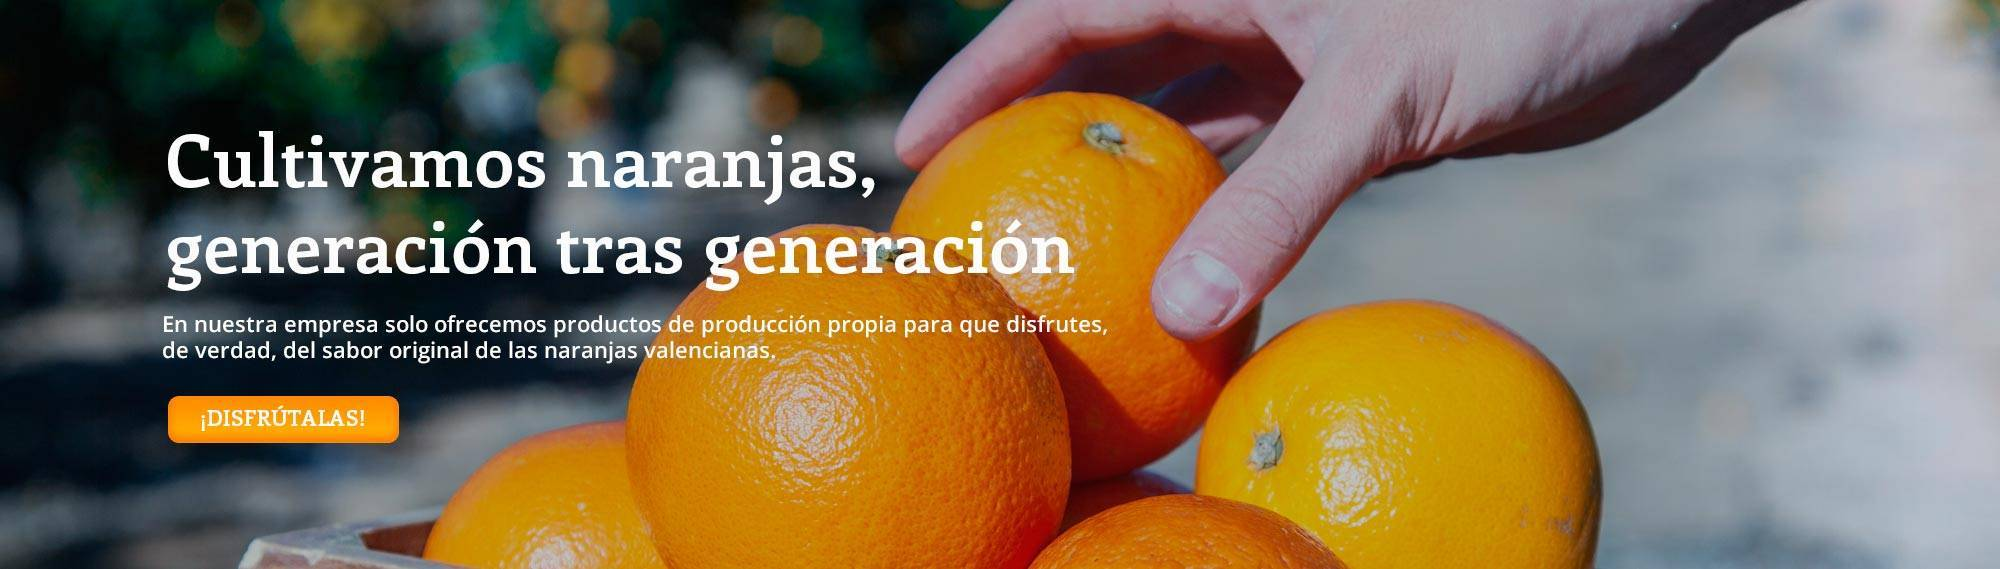 We cultivate oranges, generation after generation